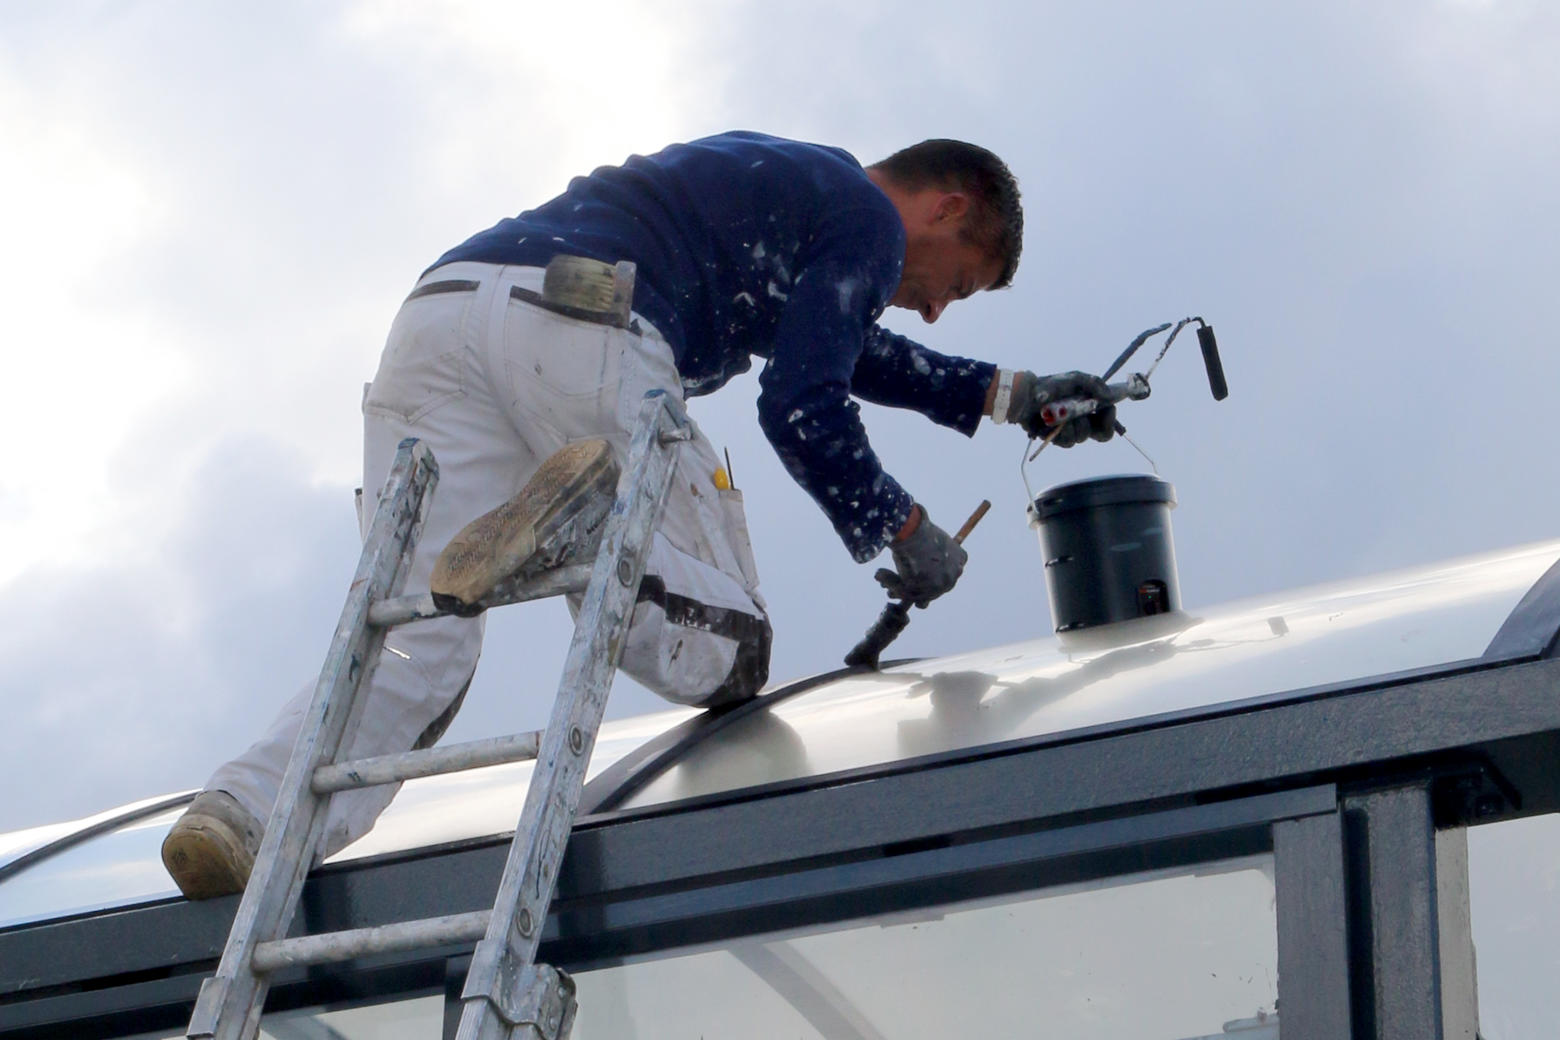 Painting when temperatures are low? Heat up your paint!